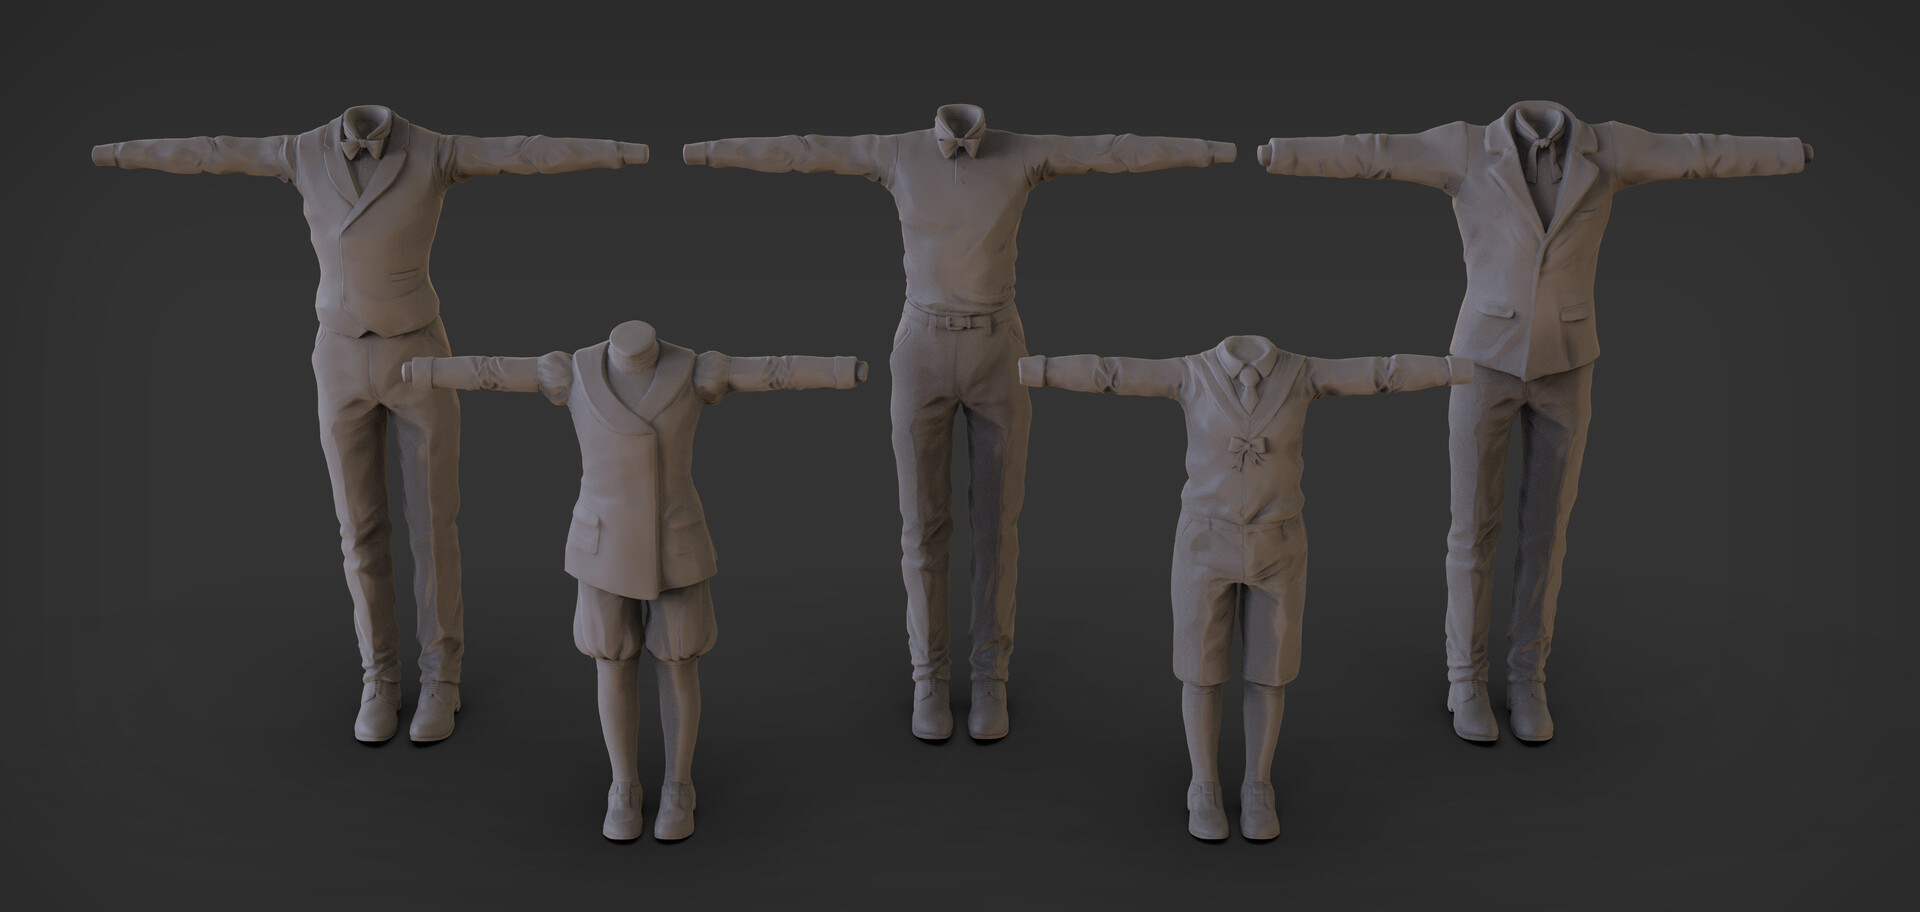 Some cloth sculpt